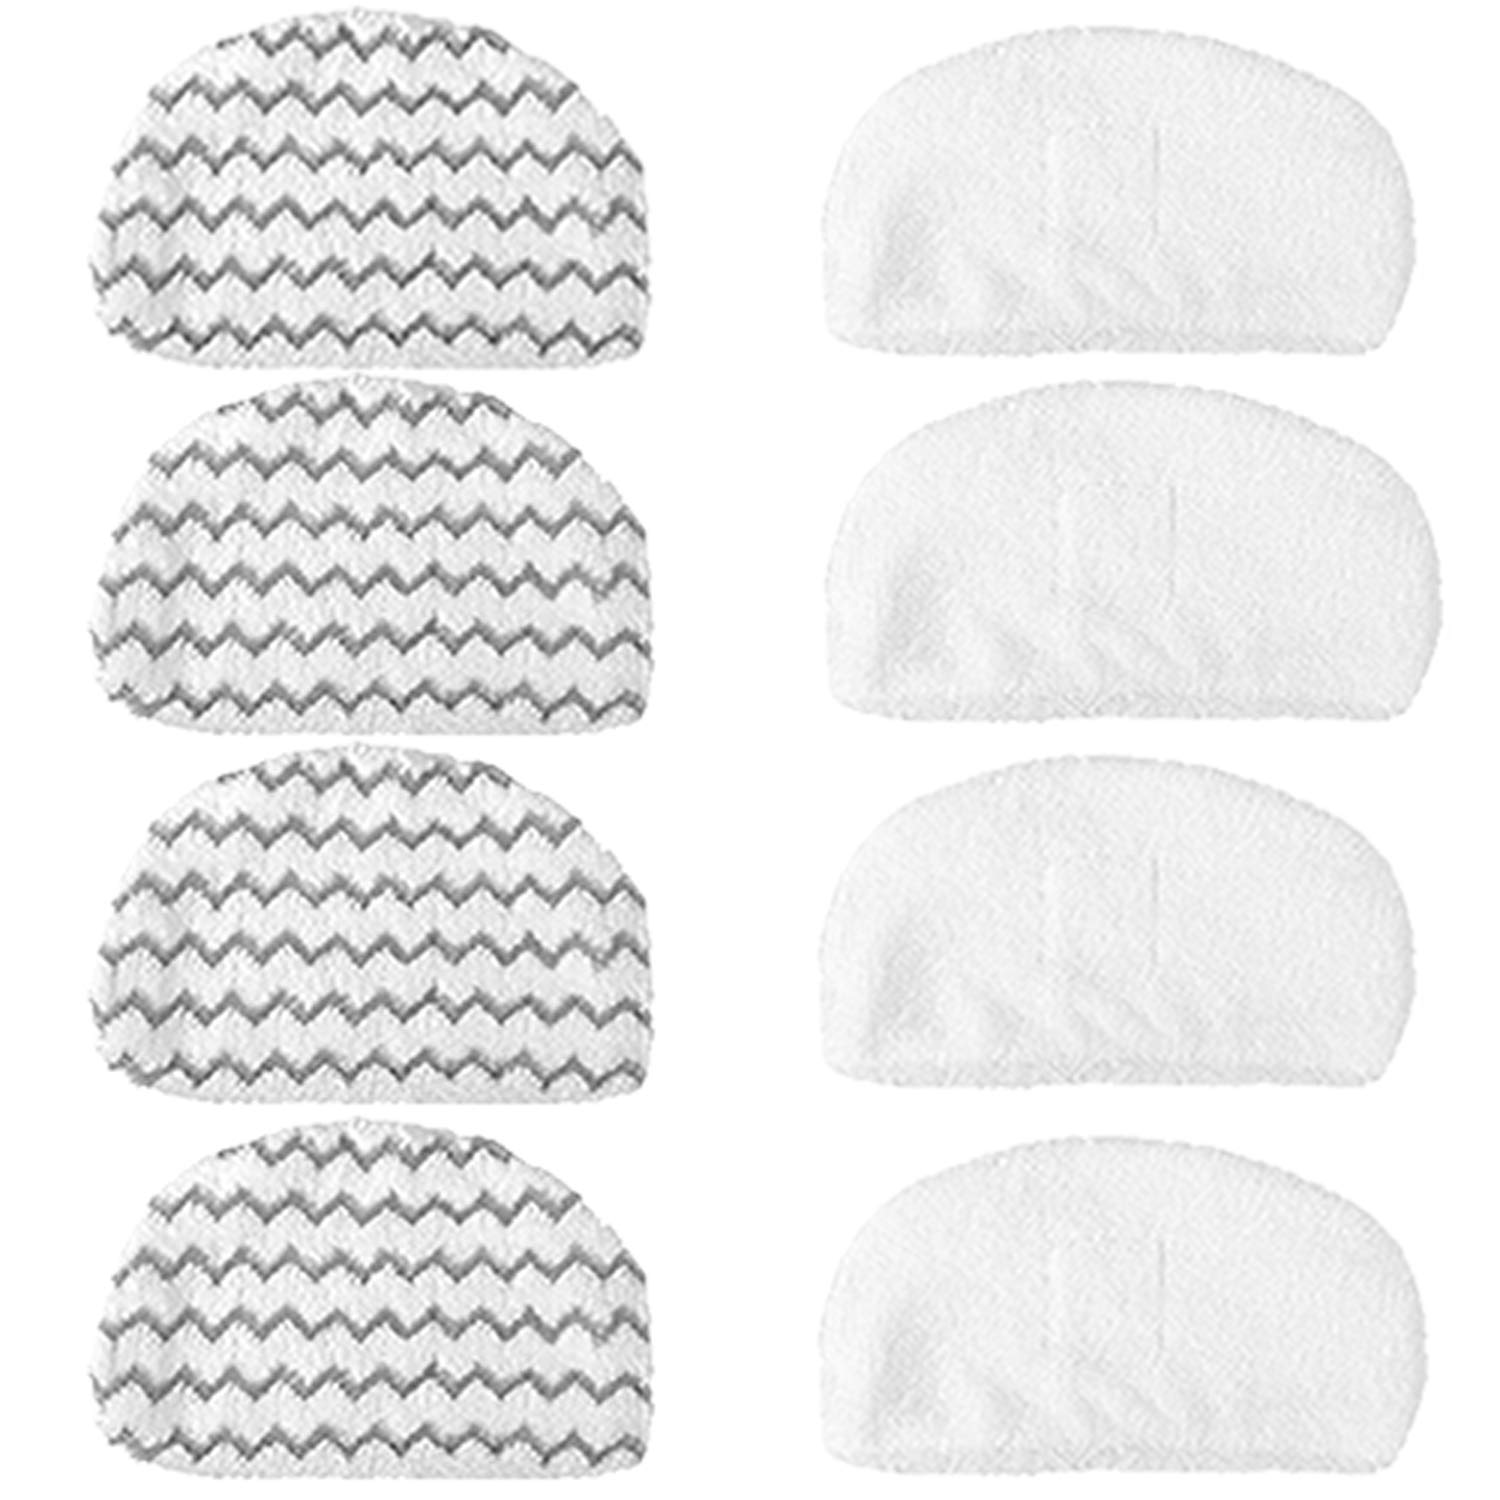 VacuumPal 8PK Washable Mopping & Scrubbing Pads Replacement for Bissell Powerfresh 1940 1440 1544 Series Model 1544A, 2075A, 1440, 1940W,19404, Deluxe 1806, 1940A, 5938, 19408, 1940Q, 1940W Steam Mop